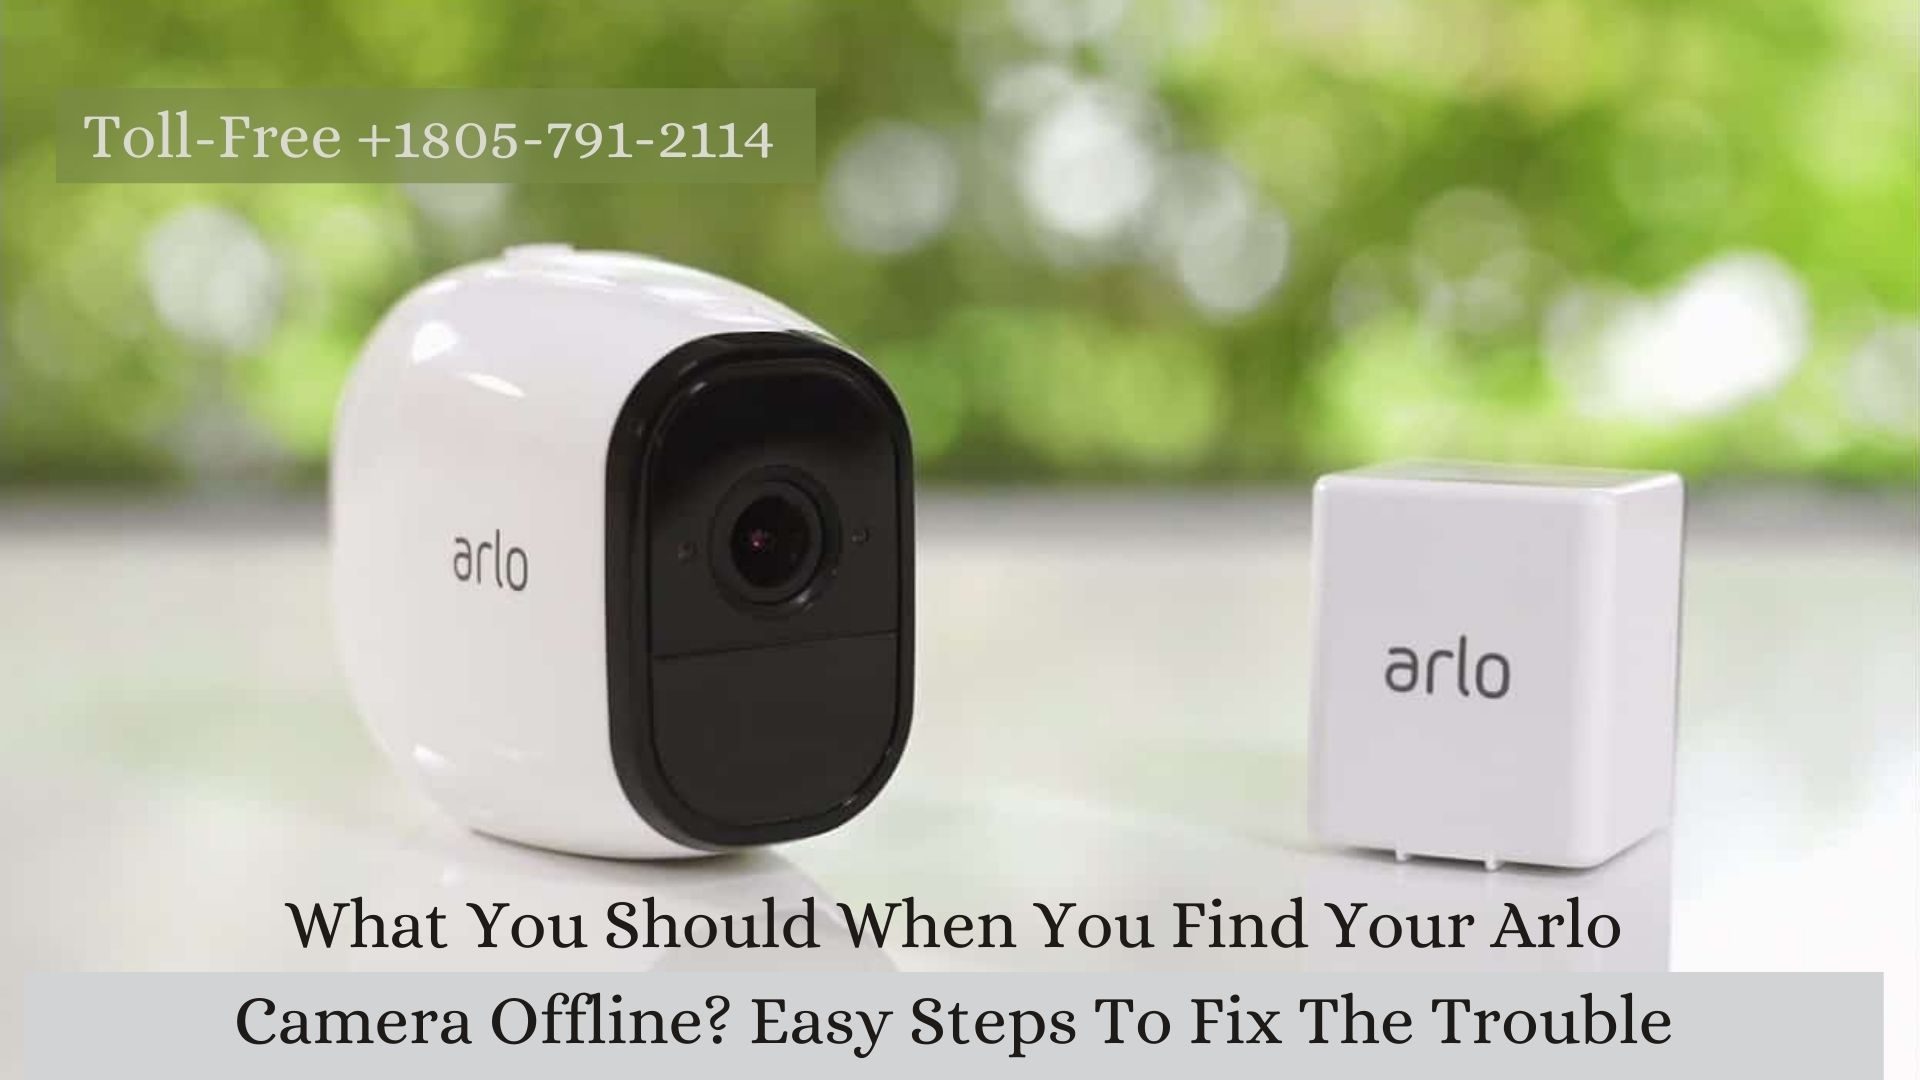 What You Should Do When You Find Your Arlo Camera Offline? Easy Steps To Fix The Trouble